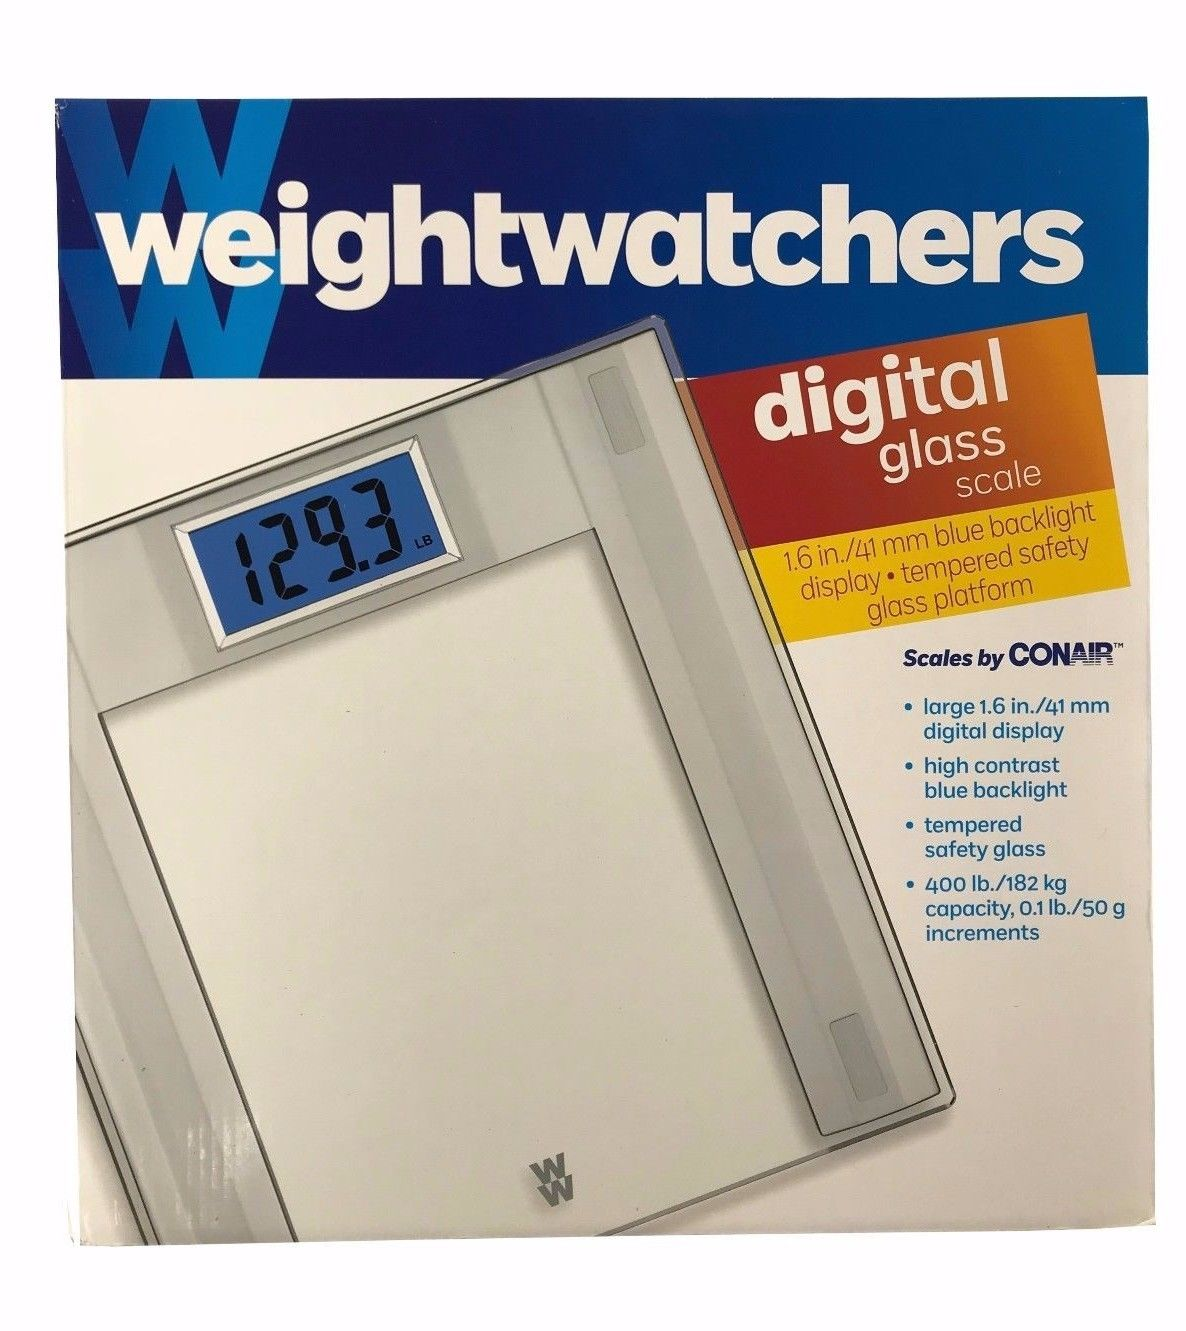 Conair Weightwatchers Digital Glass Scale 400lb/182kg Capacity, Large Display